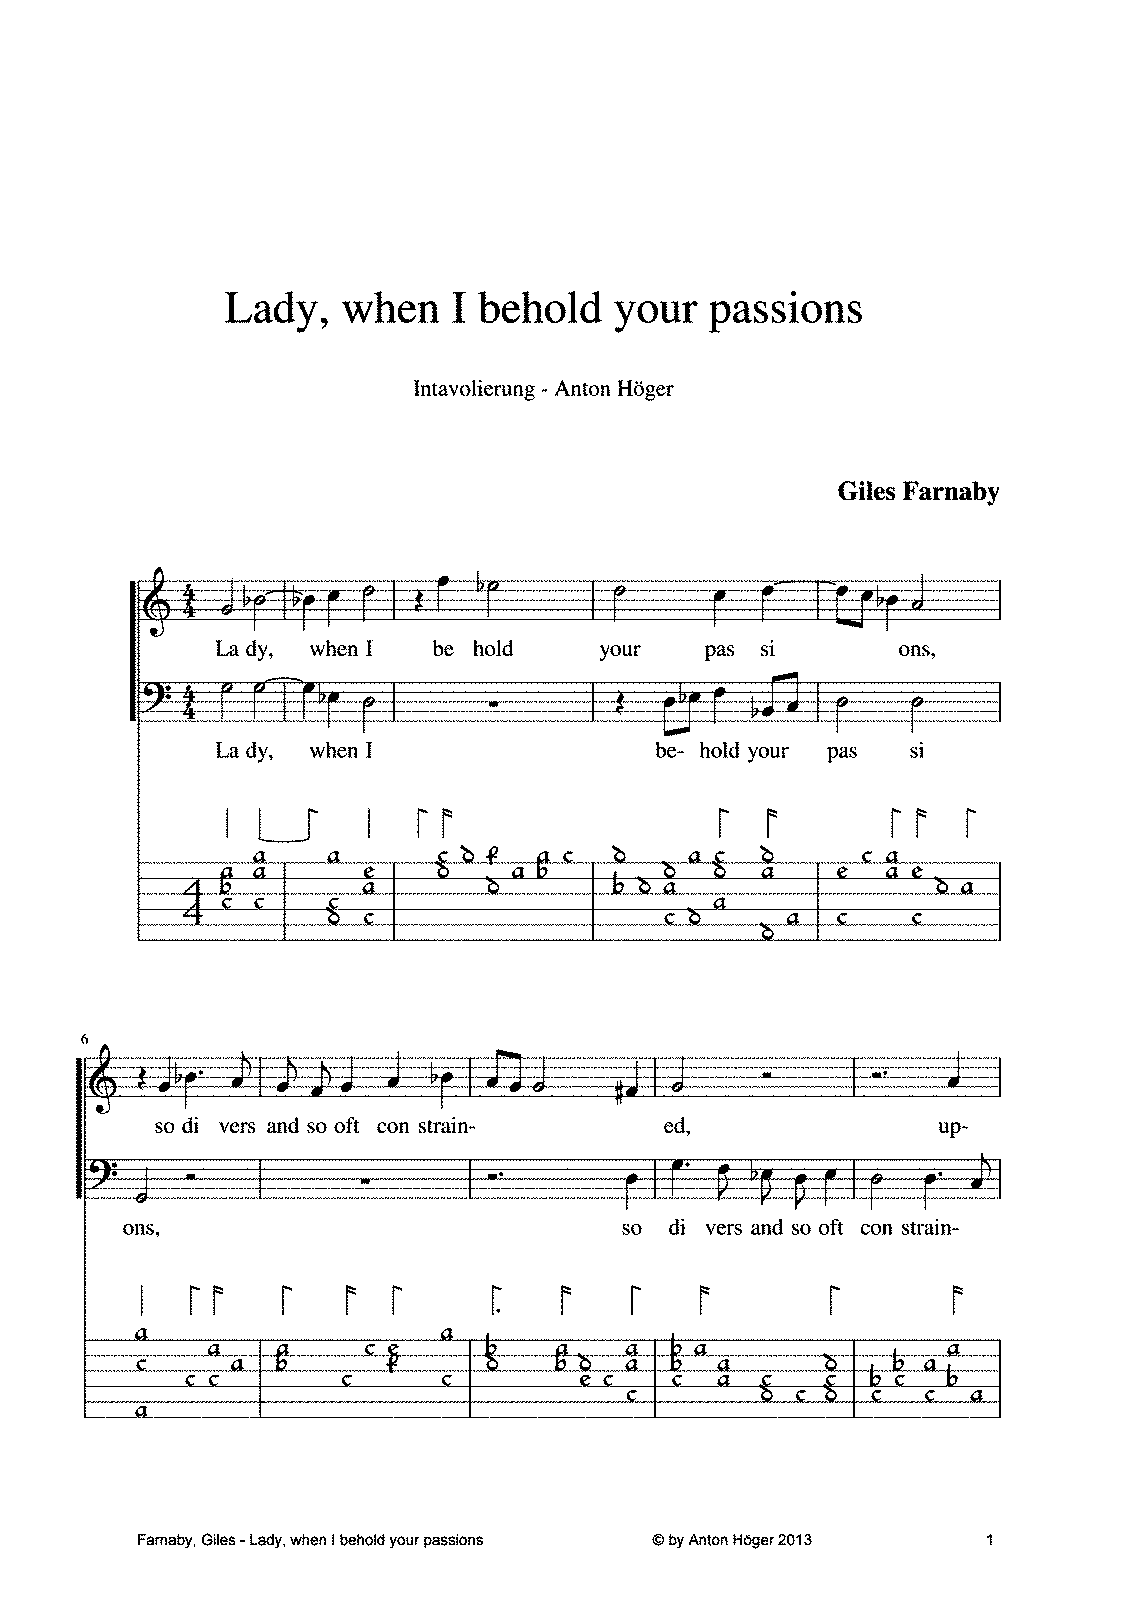 PMLP485700-Farnaby, Giles - Lady, when I behold your passions.pdf